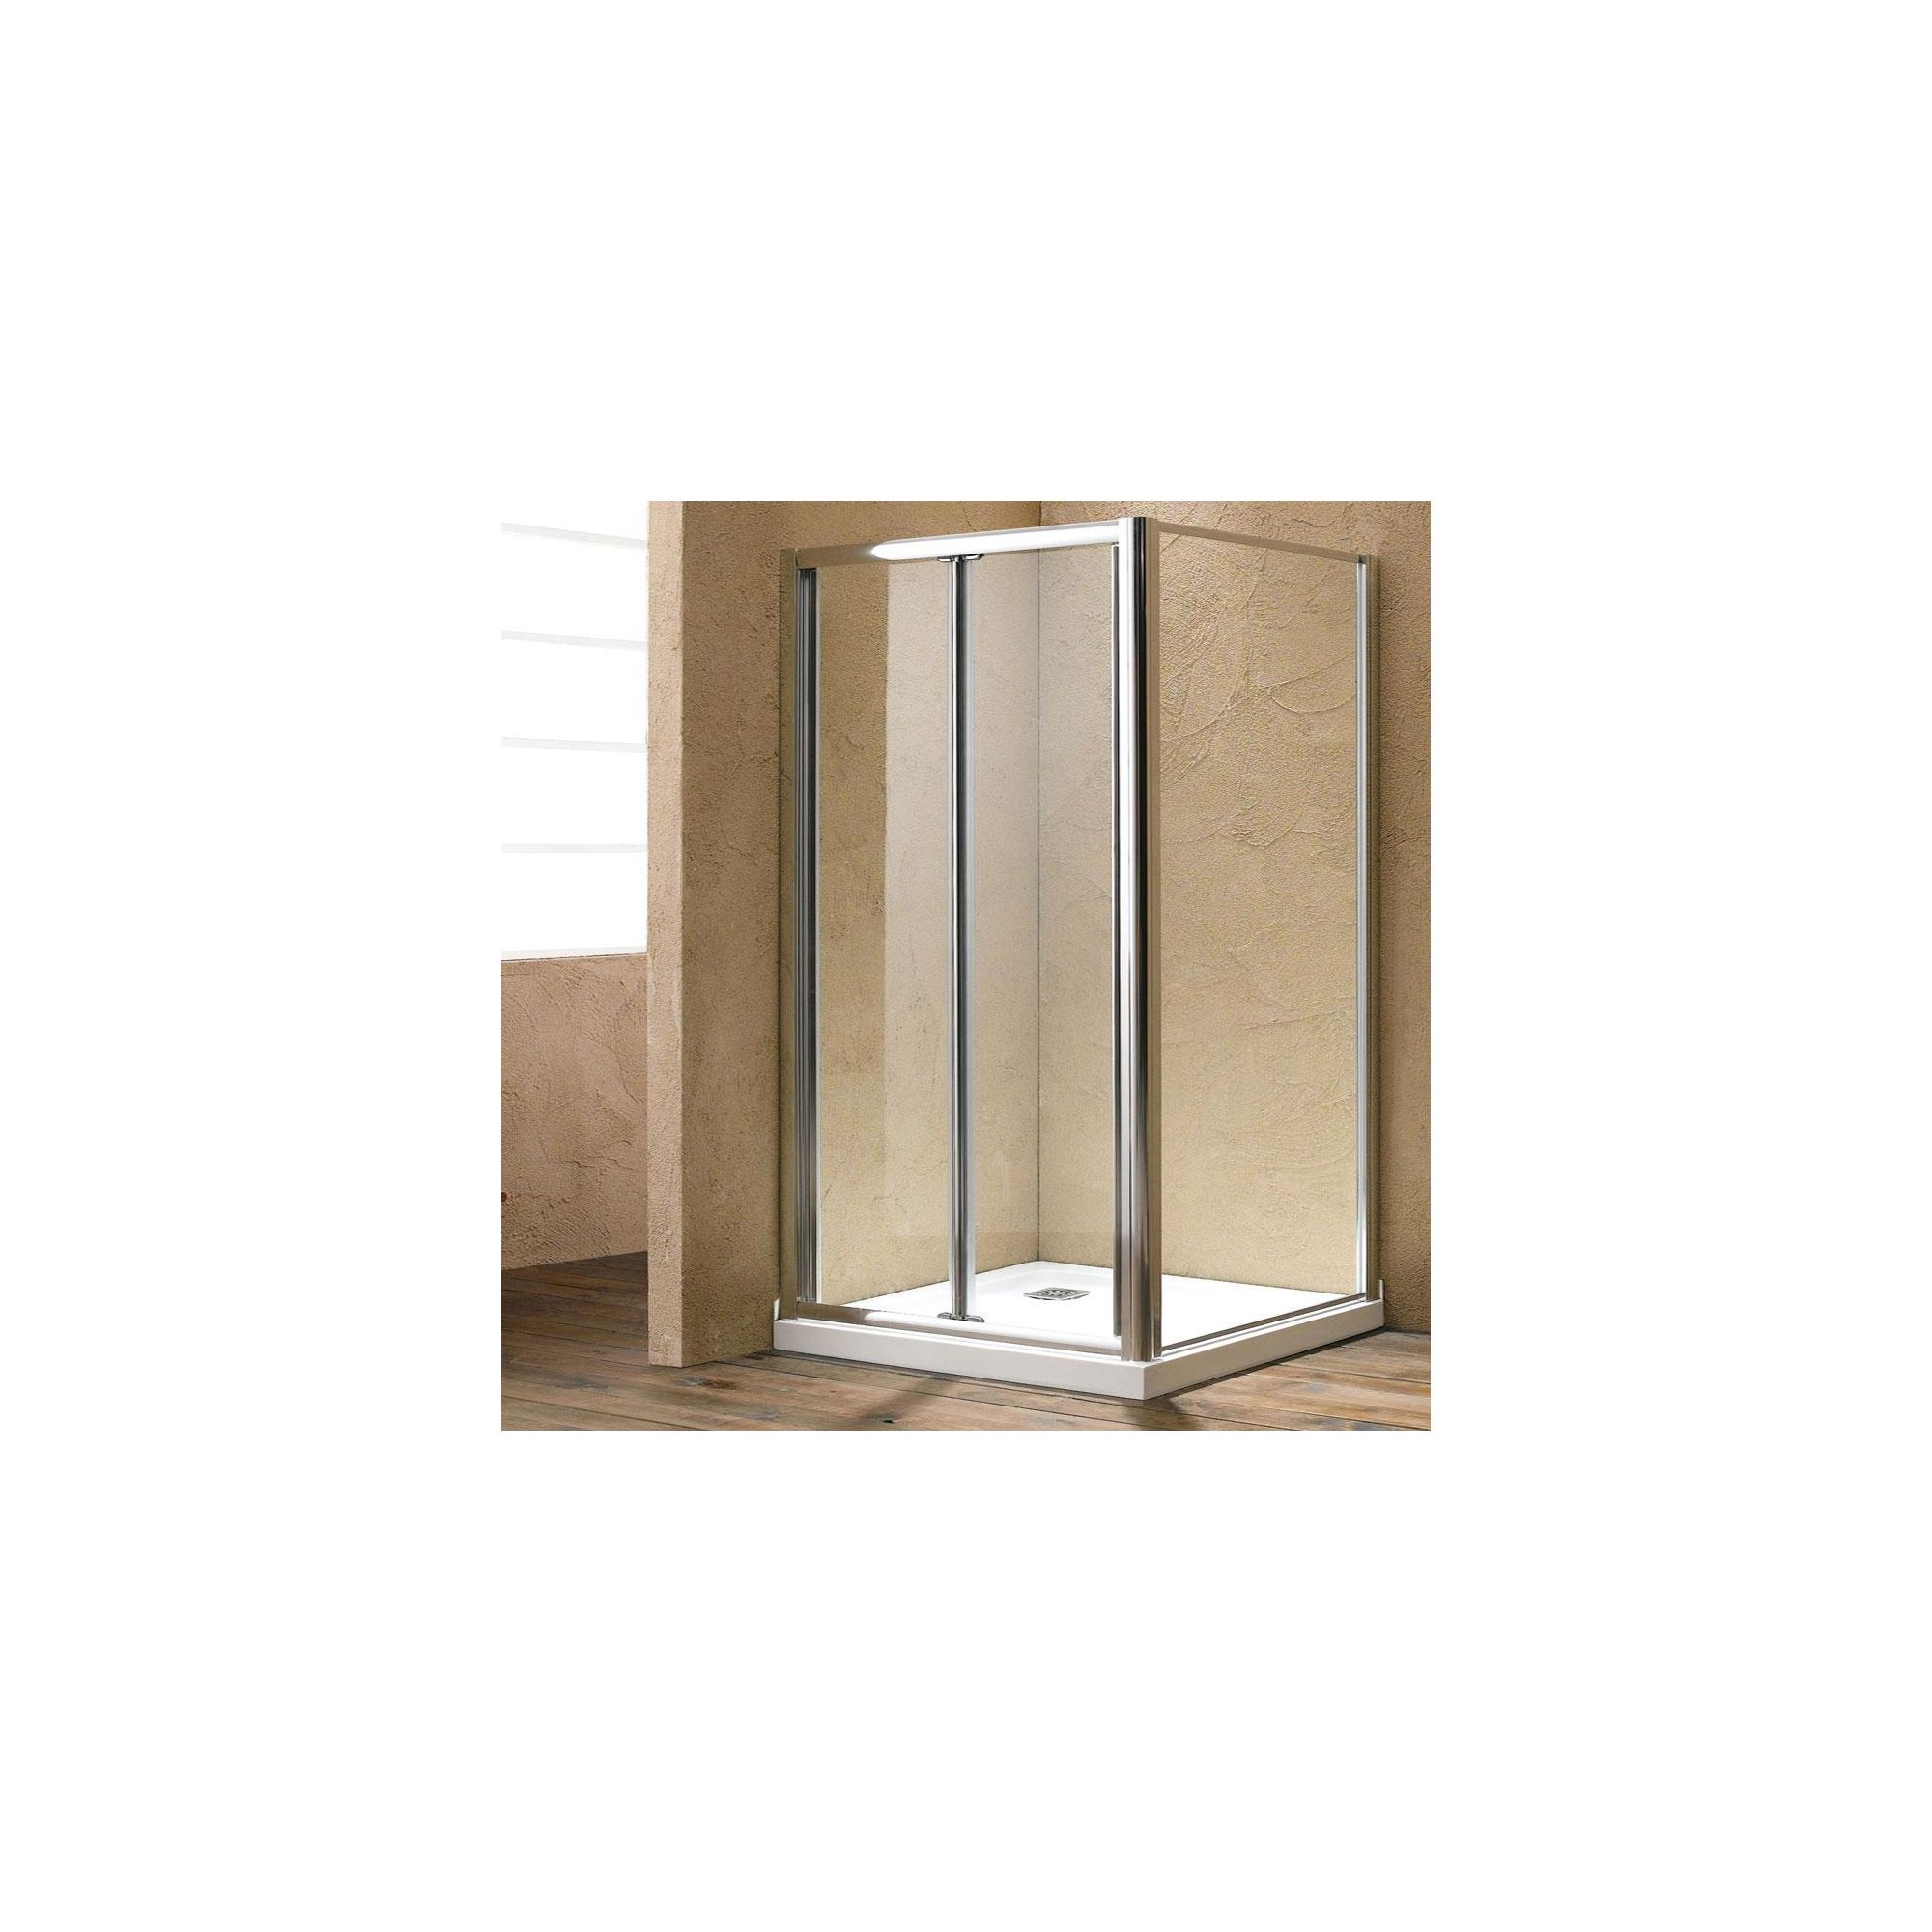 Duchy Style Twin Bi-Fold Door Shower Enclosure, 1200mm x 700mm, 6mm Glass, Low Profile Tray at Tesco Direct